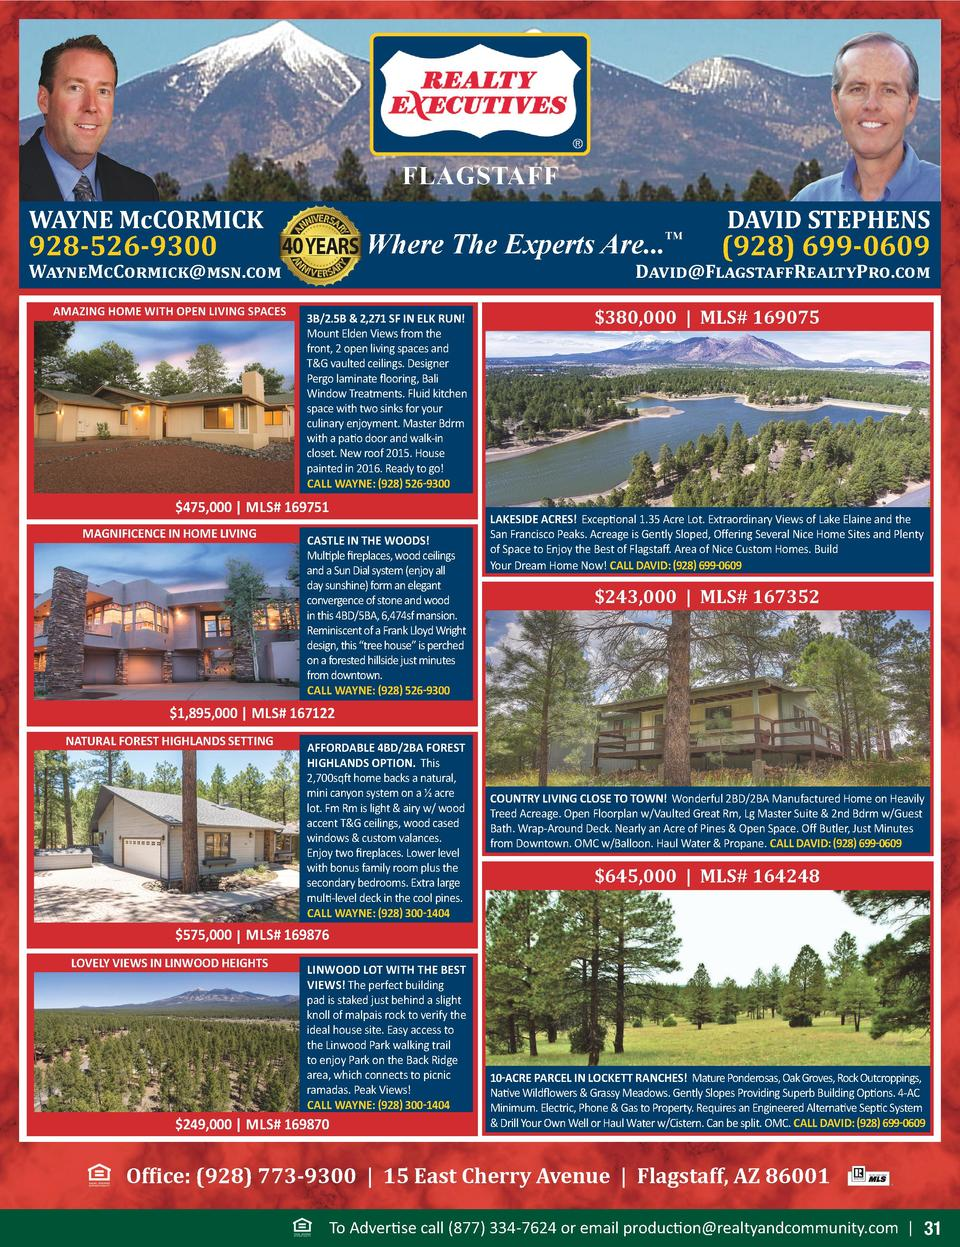 FLAGSTAFF WAYNE McCORMICK  Where The Experts Are...       928-526-9300  WayneMcCormick msn.com AMAZING HOME WITH OPEN LIVI...